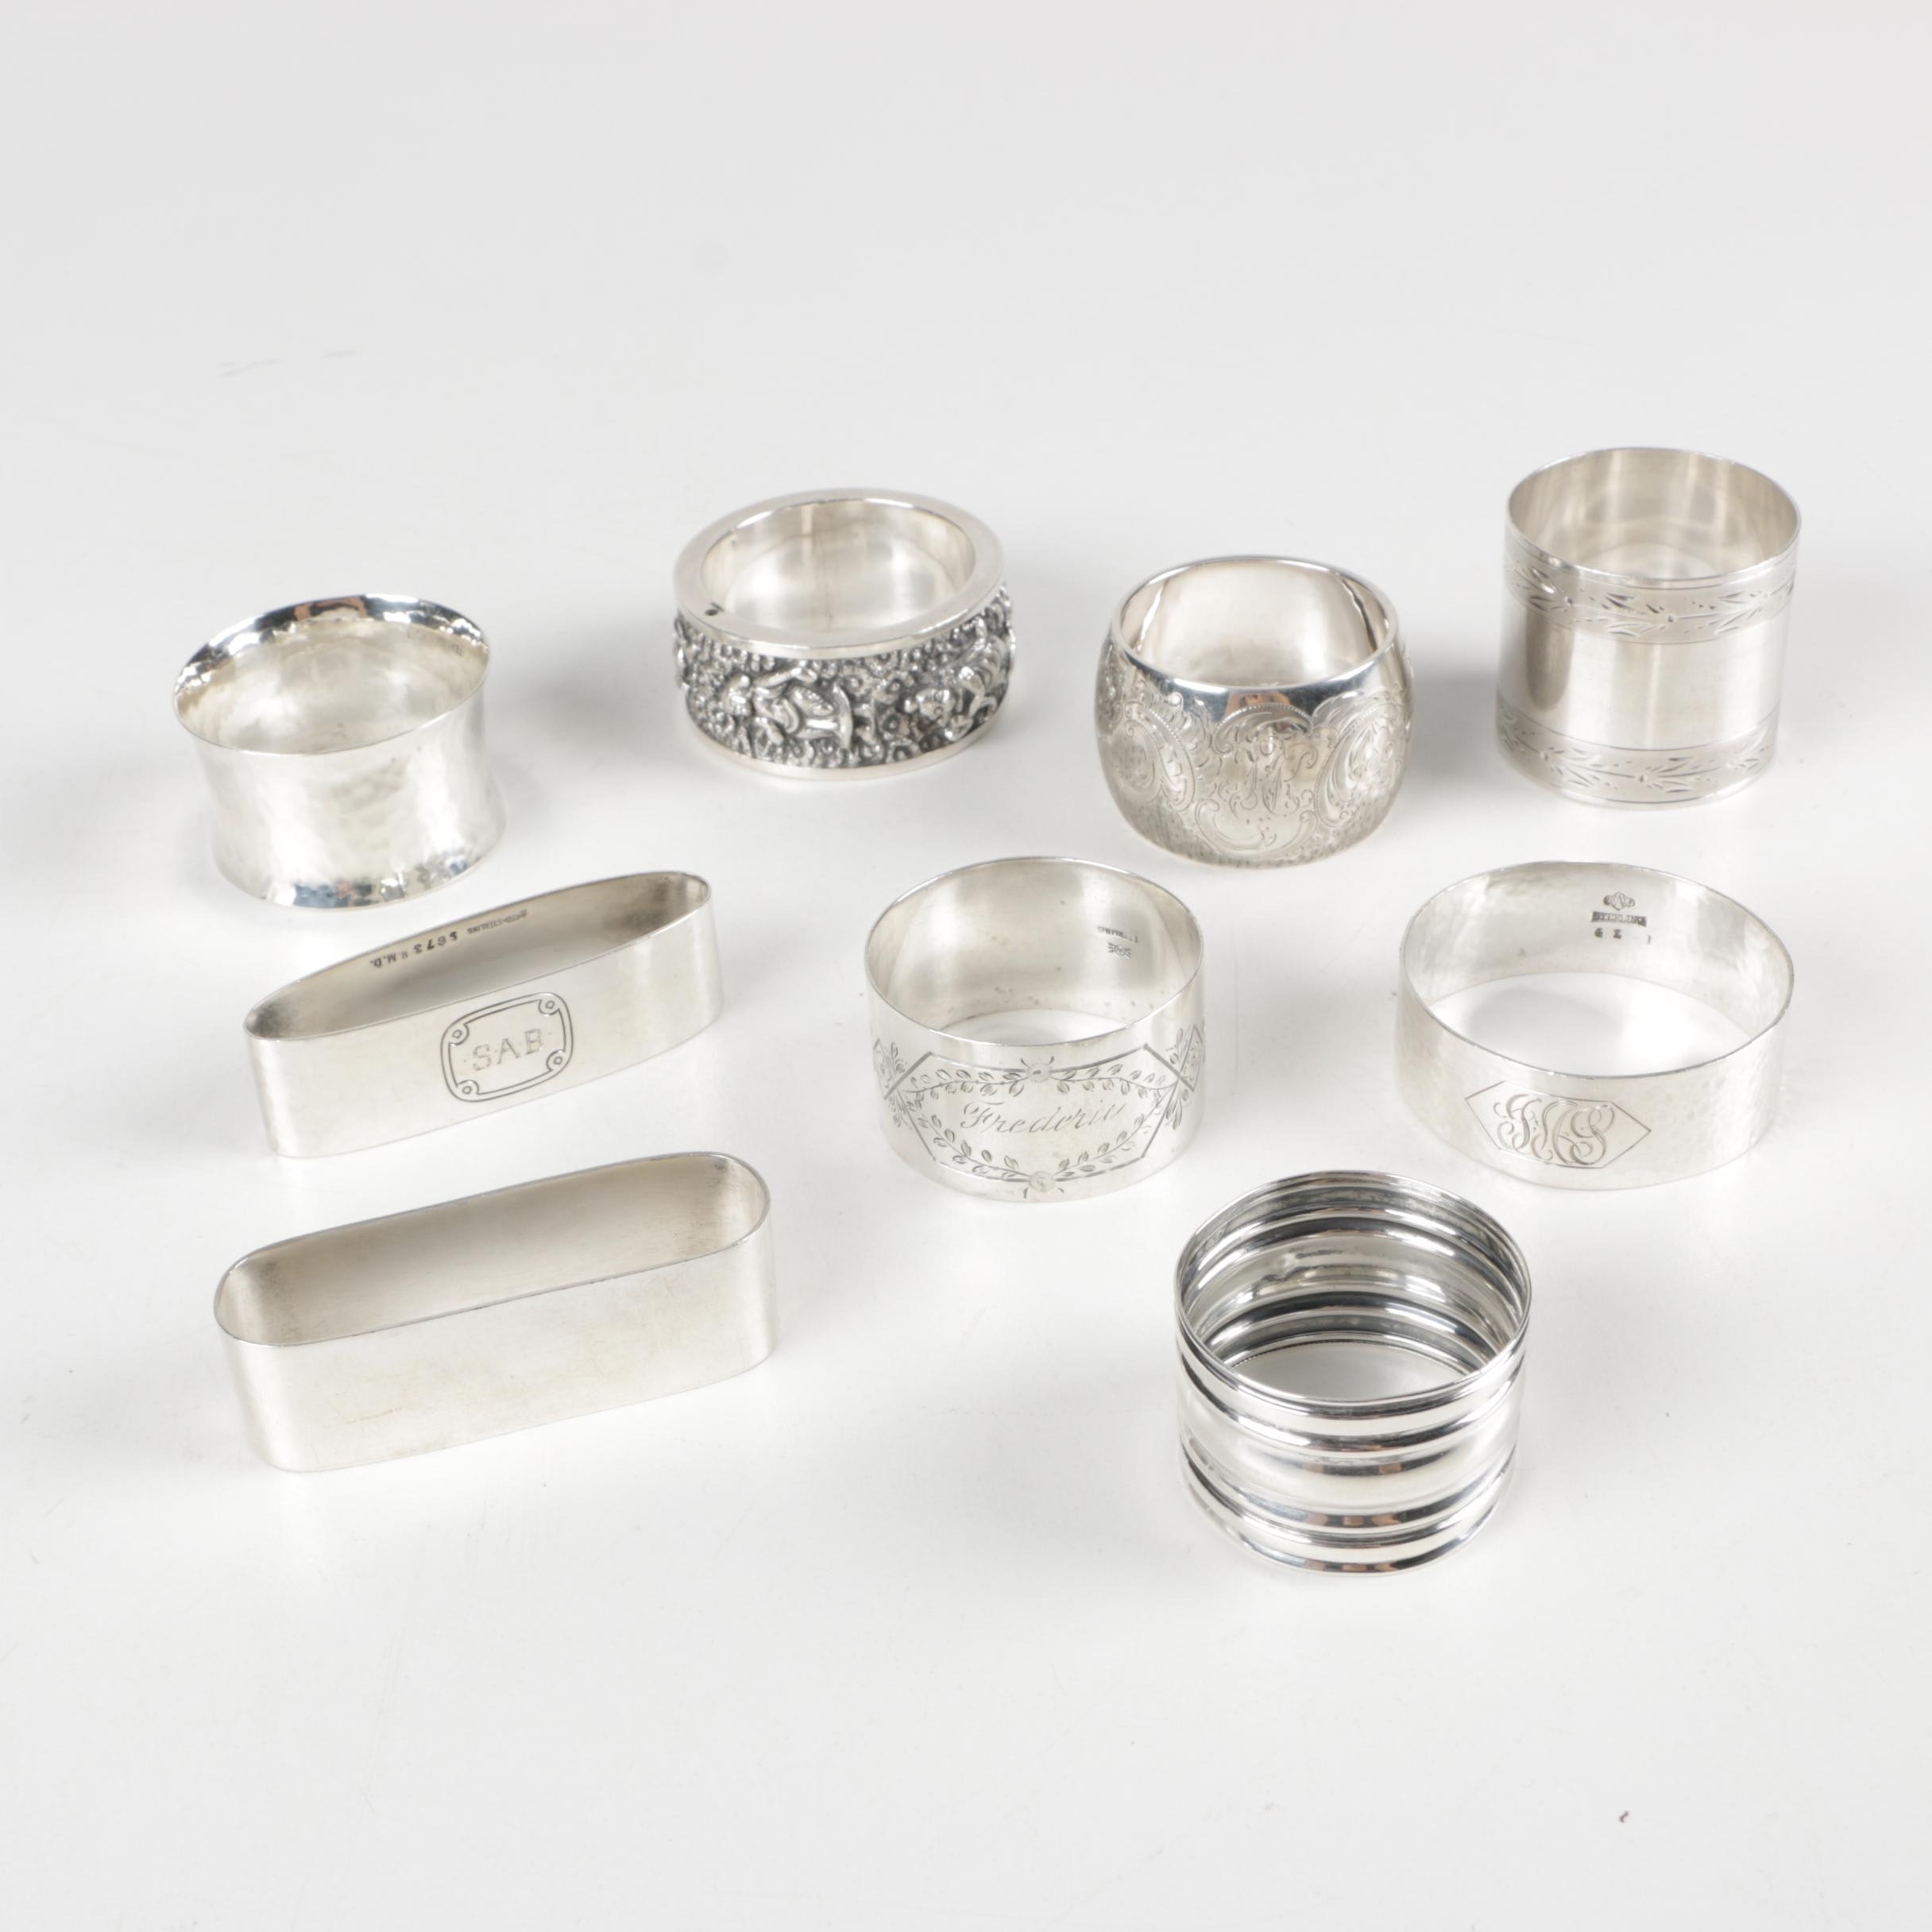 Personalized Sterling Silver Napkin Rings Including William B. Kerr